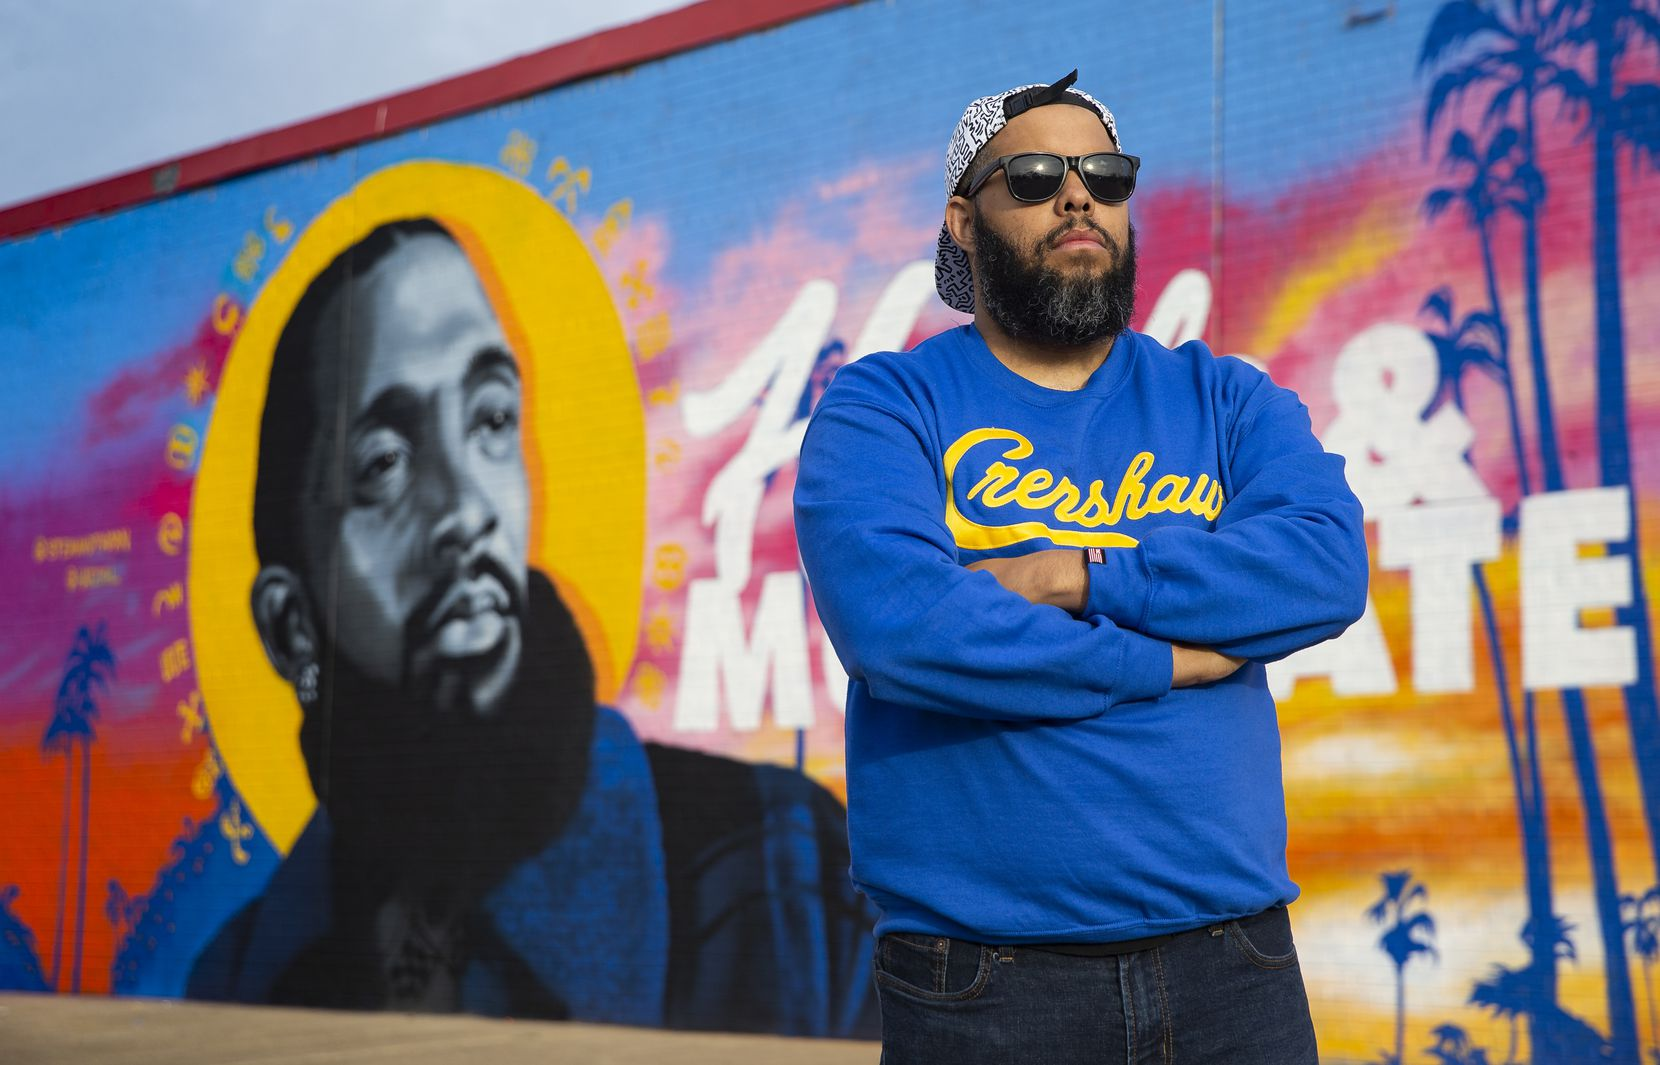 Dallas artist Jeremy Biggers poses in front of his mural dedicated to the late rapper, entrepreneur and community activist Nipsey Hussle at the Glendale Shopping Center on Feb. 22, 2020 in Dallas.